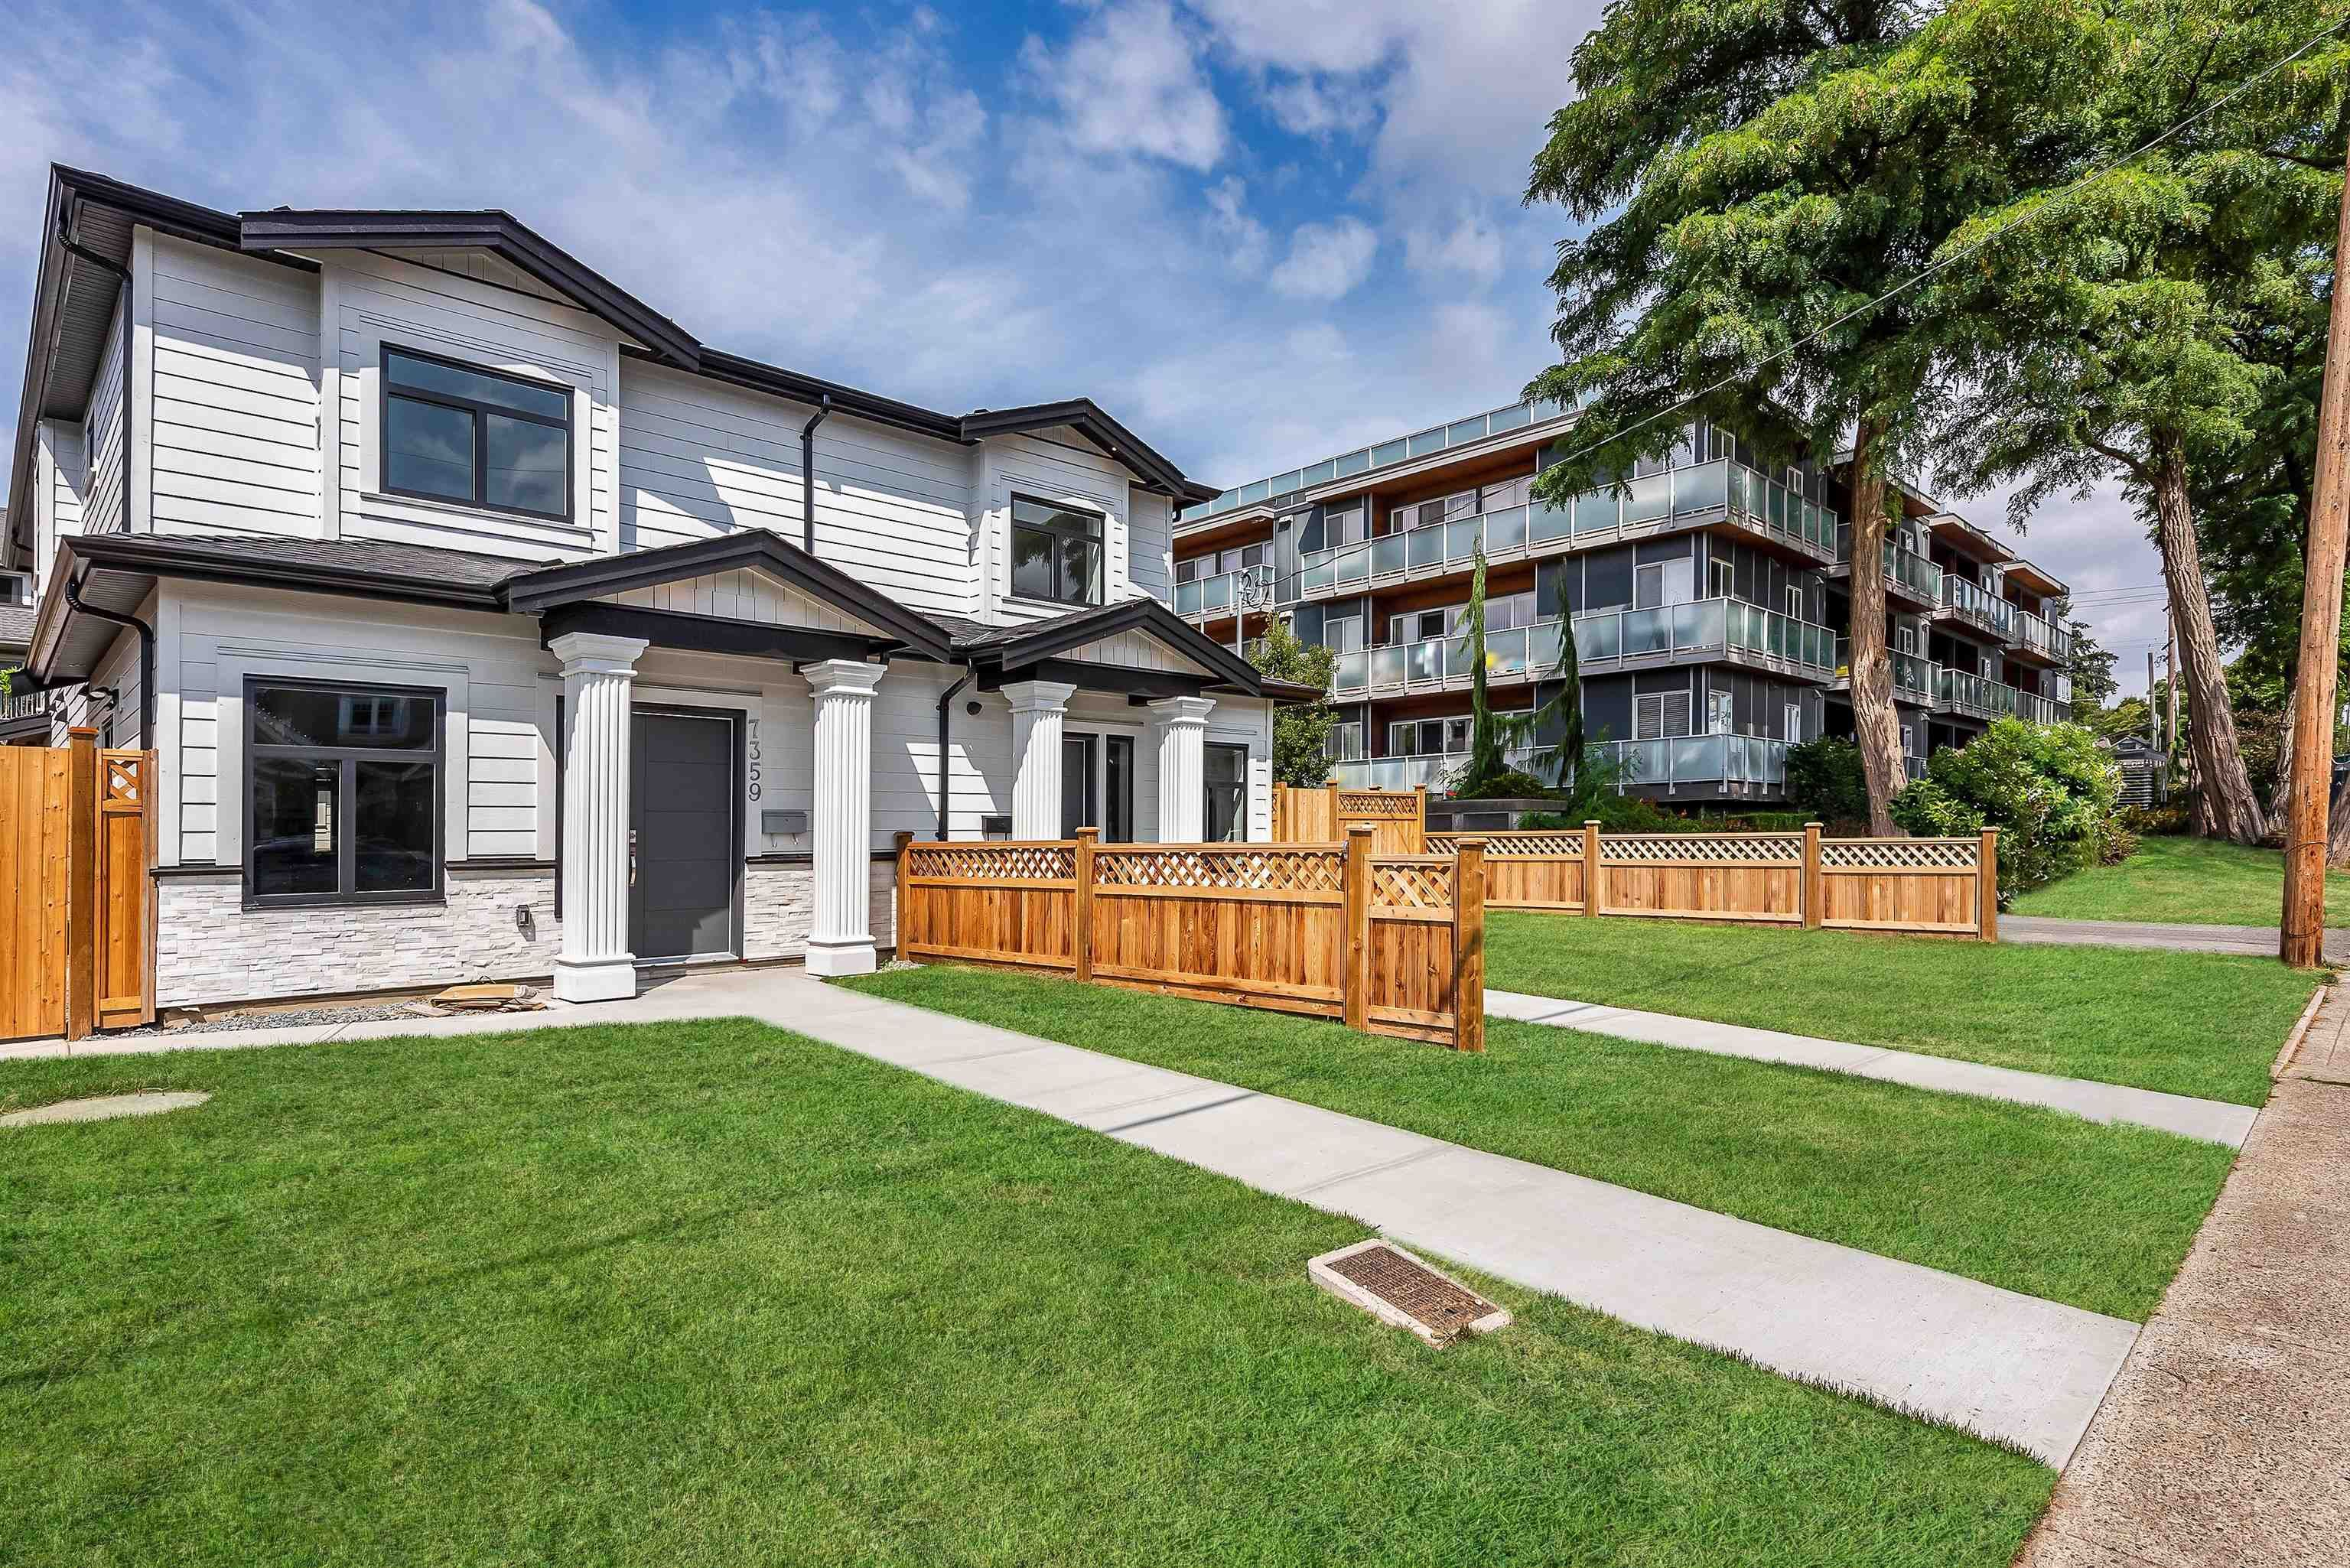 Main Photo: 7359 14TH Avenue in Burnaby: East Burnaby 1/2 Duplex for sale (Burnaby East)  : MLS®# R2611908